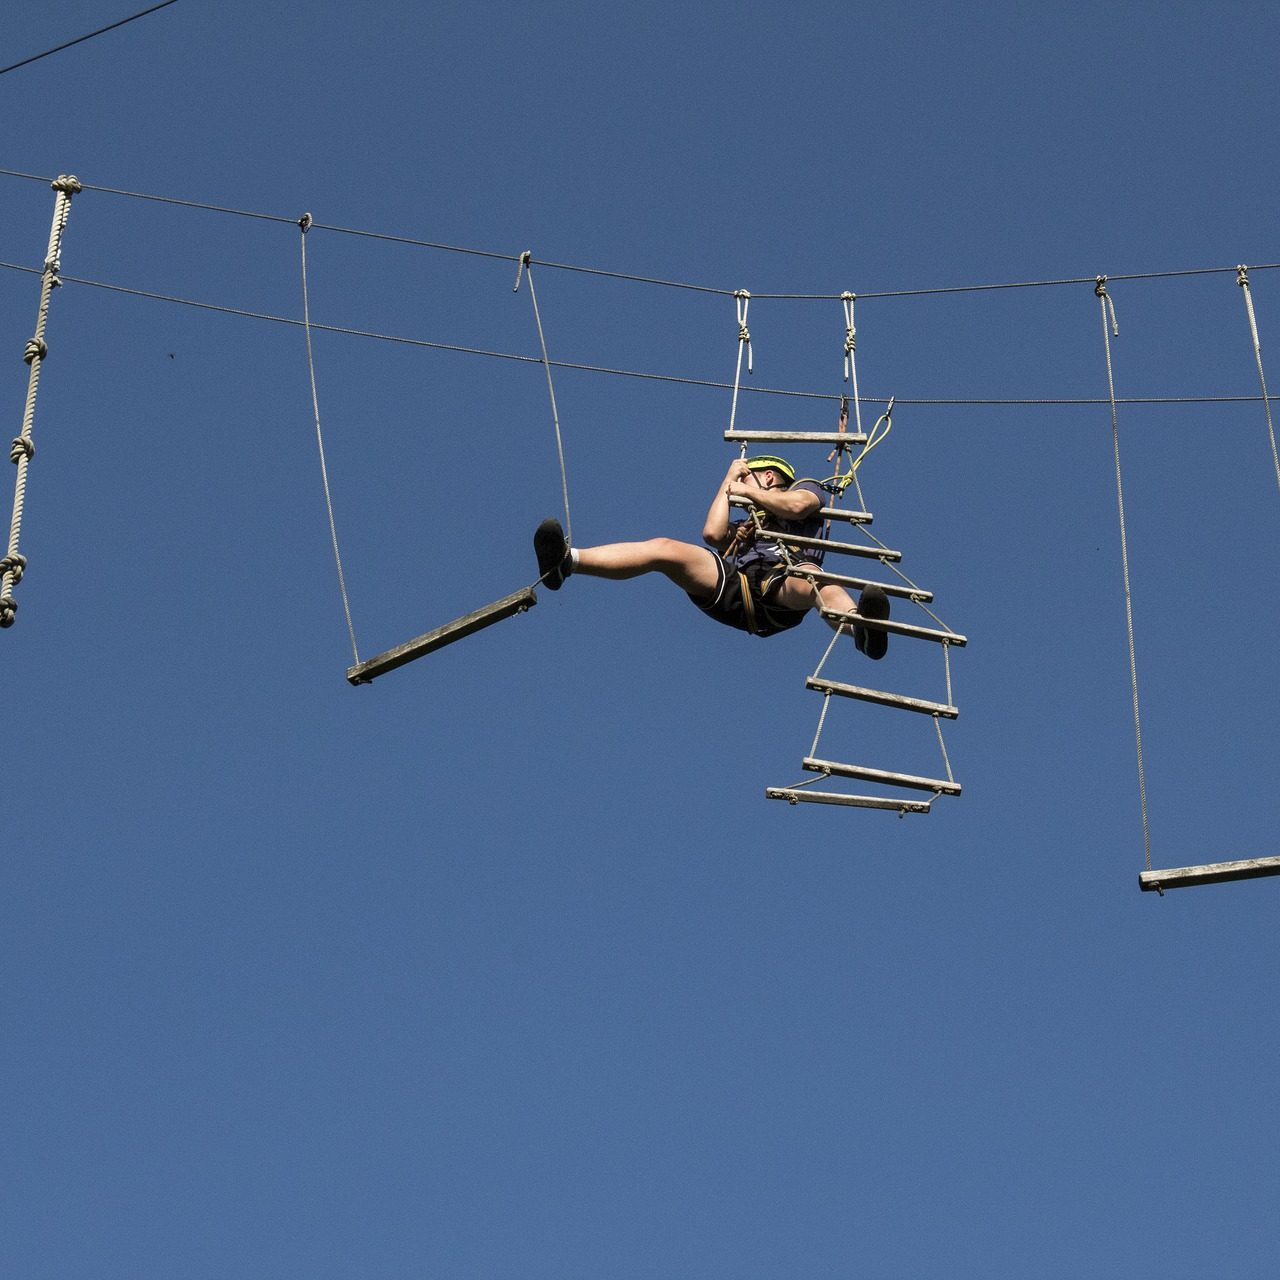 high-ropes-course-3716520_1920